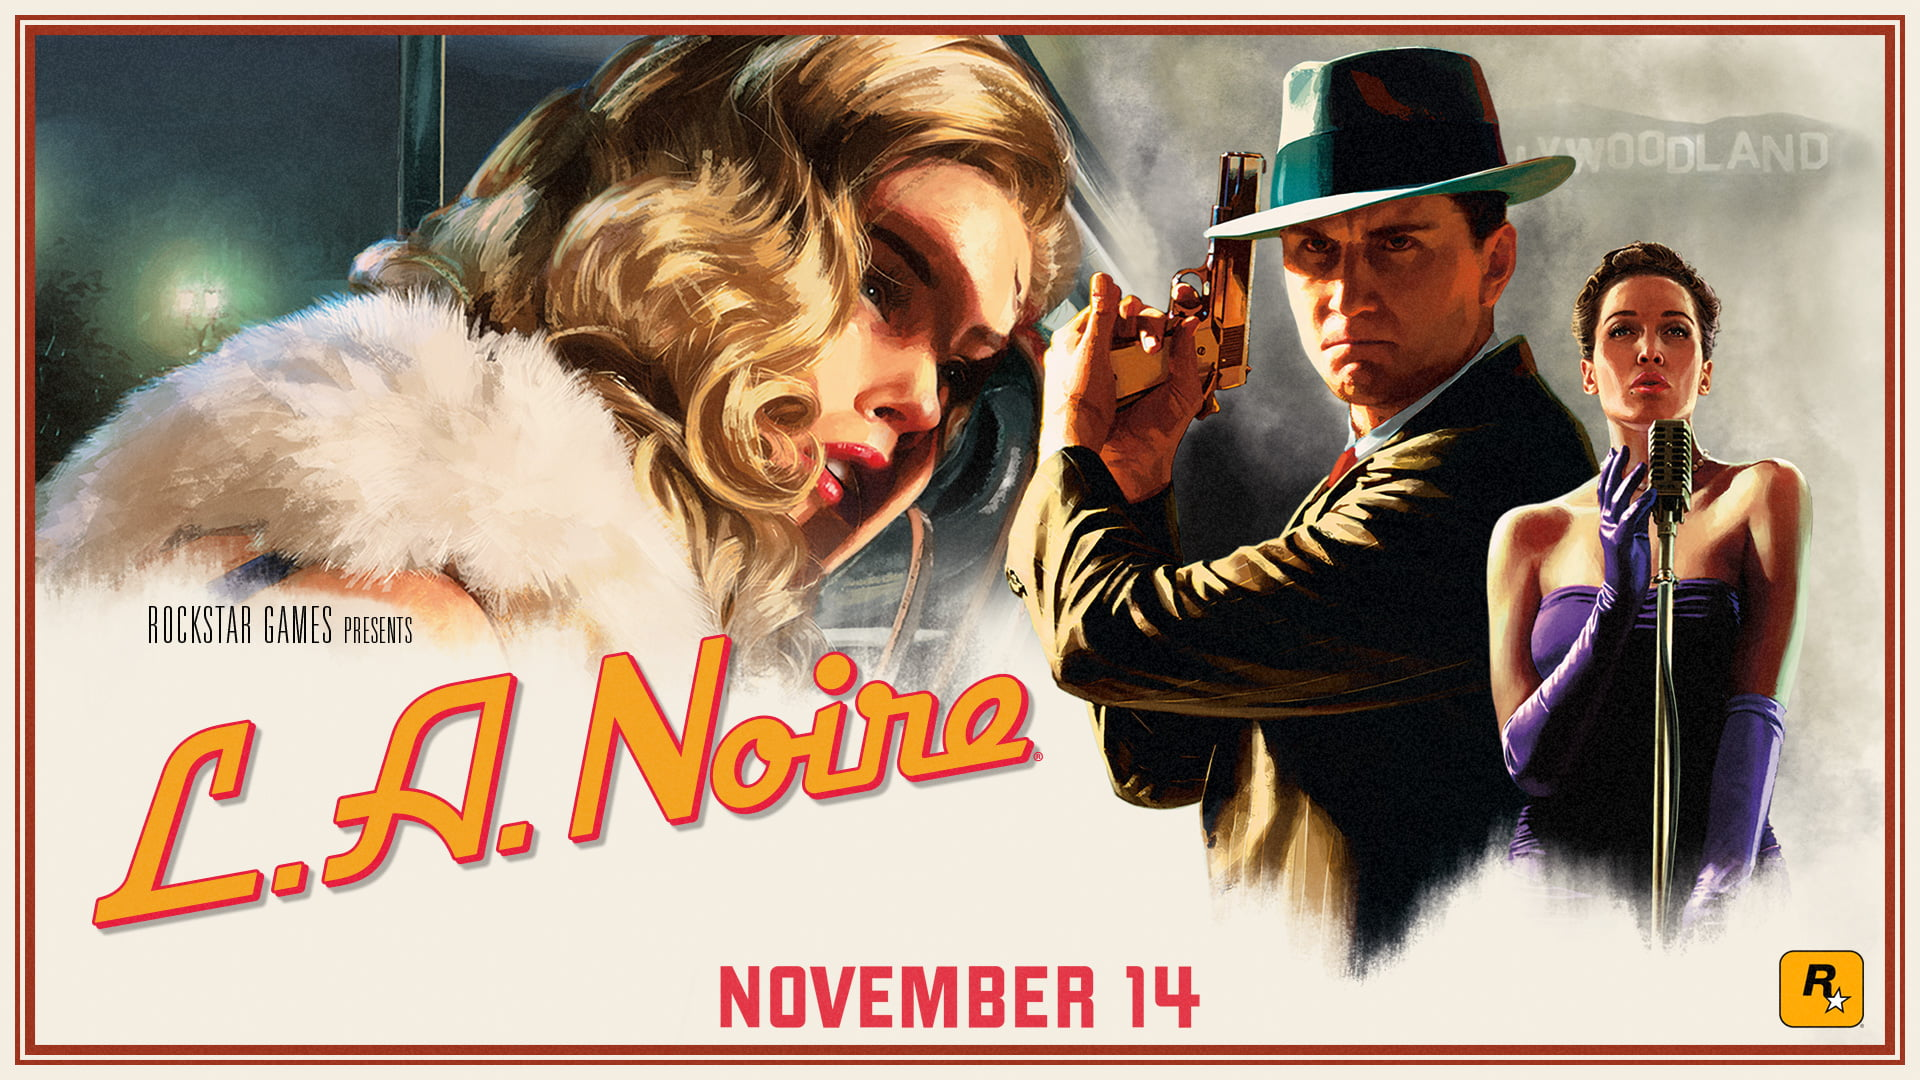 Photo of Four New Versions of L.A. NOIRE Releasing November 14